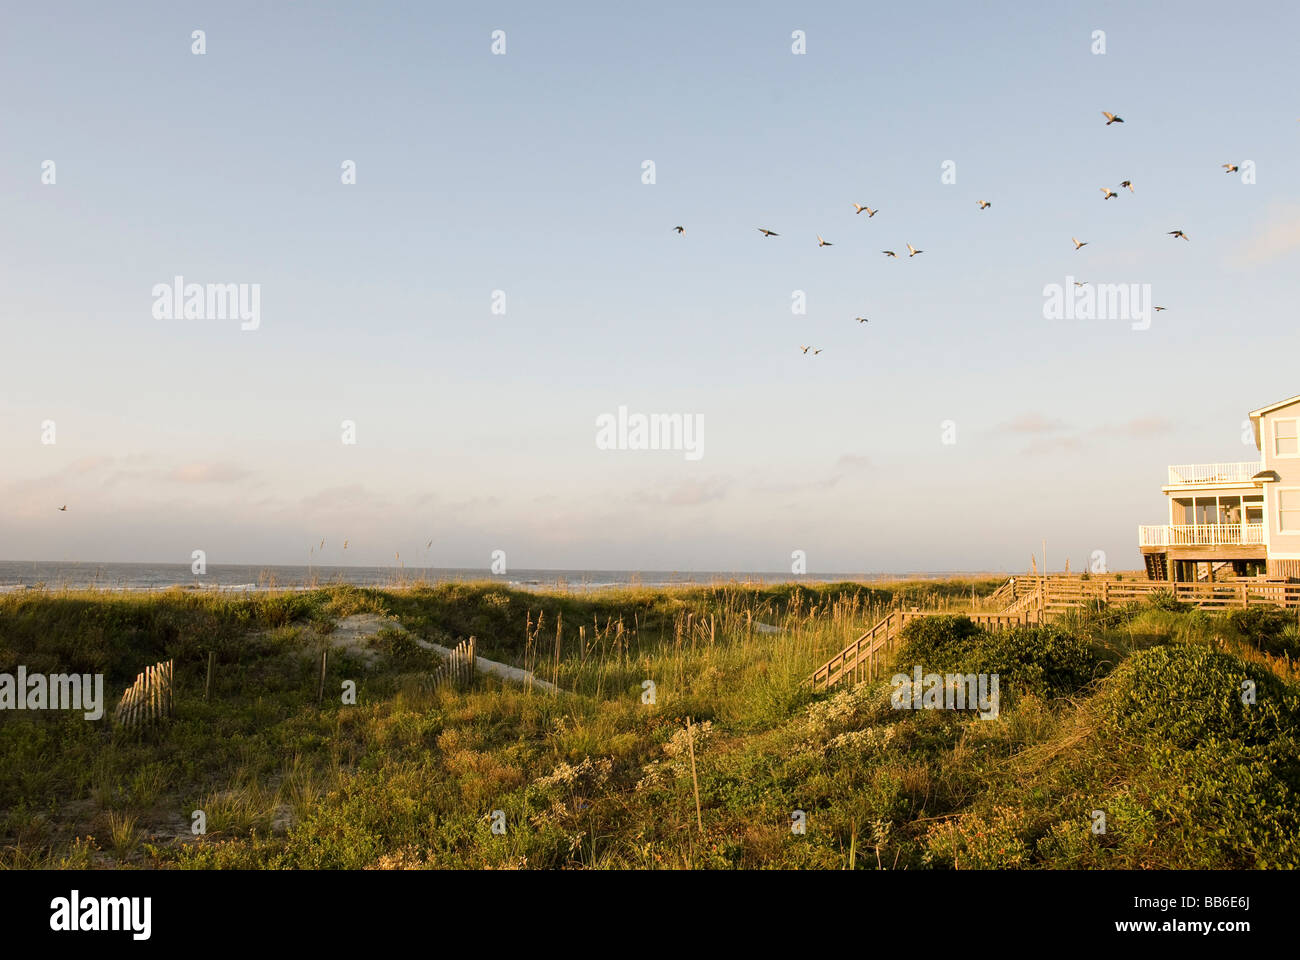 beach dunes and ocean - Stock Image